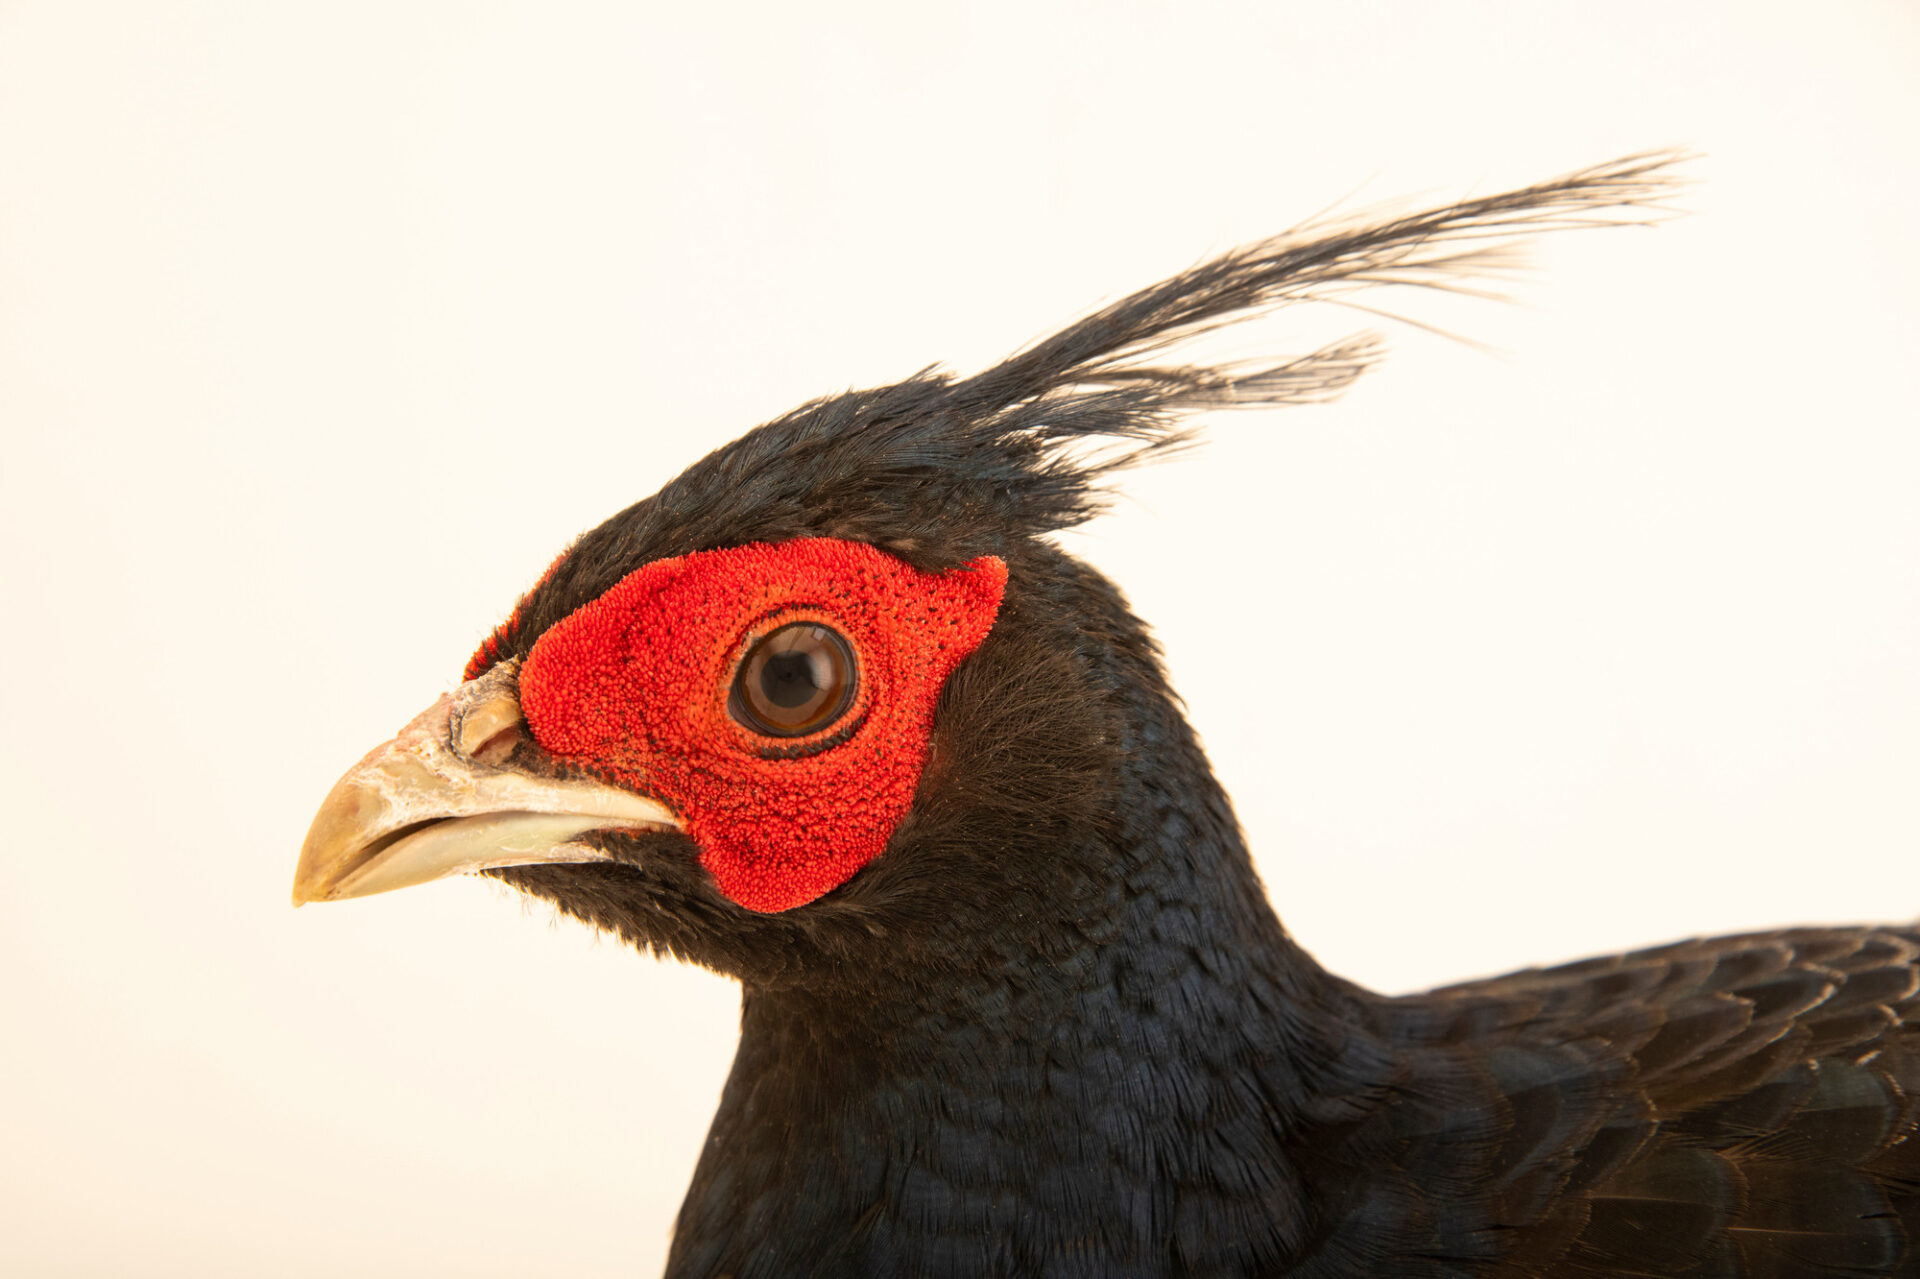 Photo: A male Horsfield's kalij pheasant (Lophura leucomelanos lathami) from a private collection.